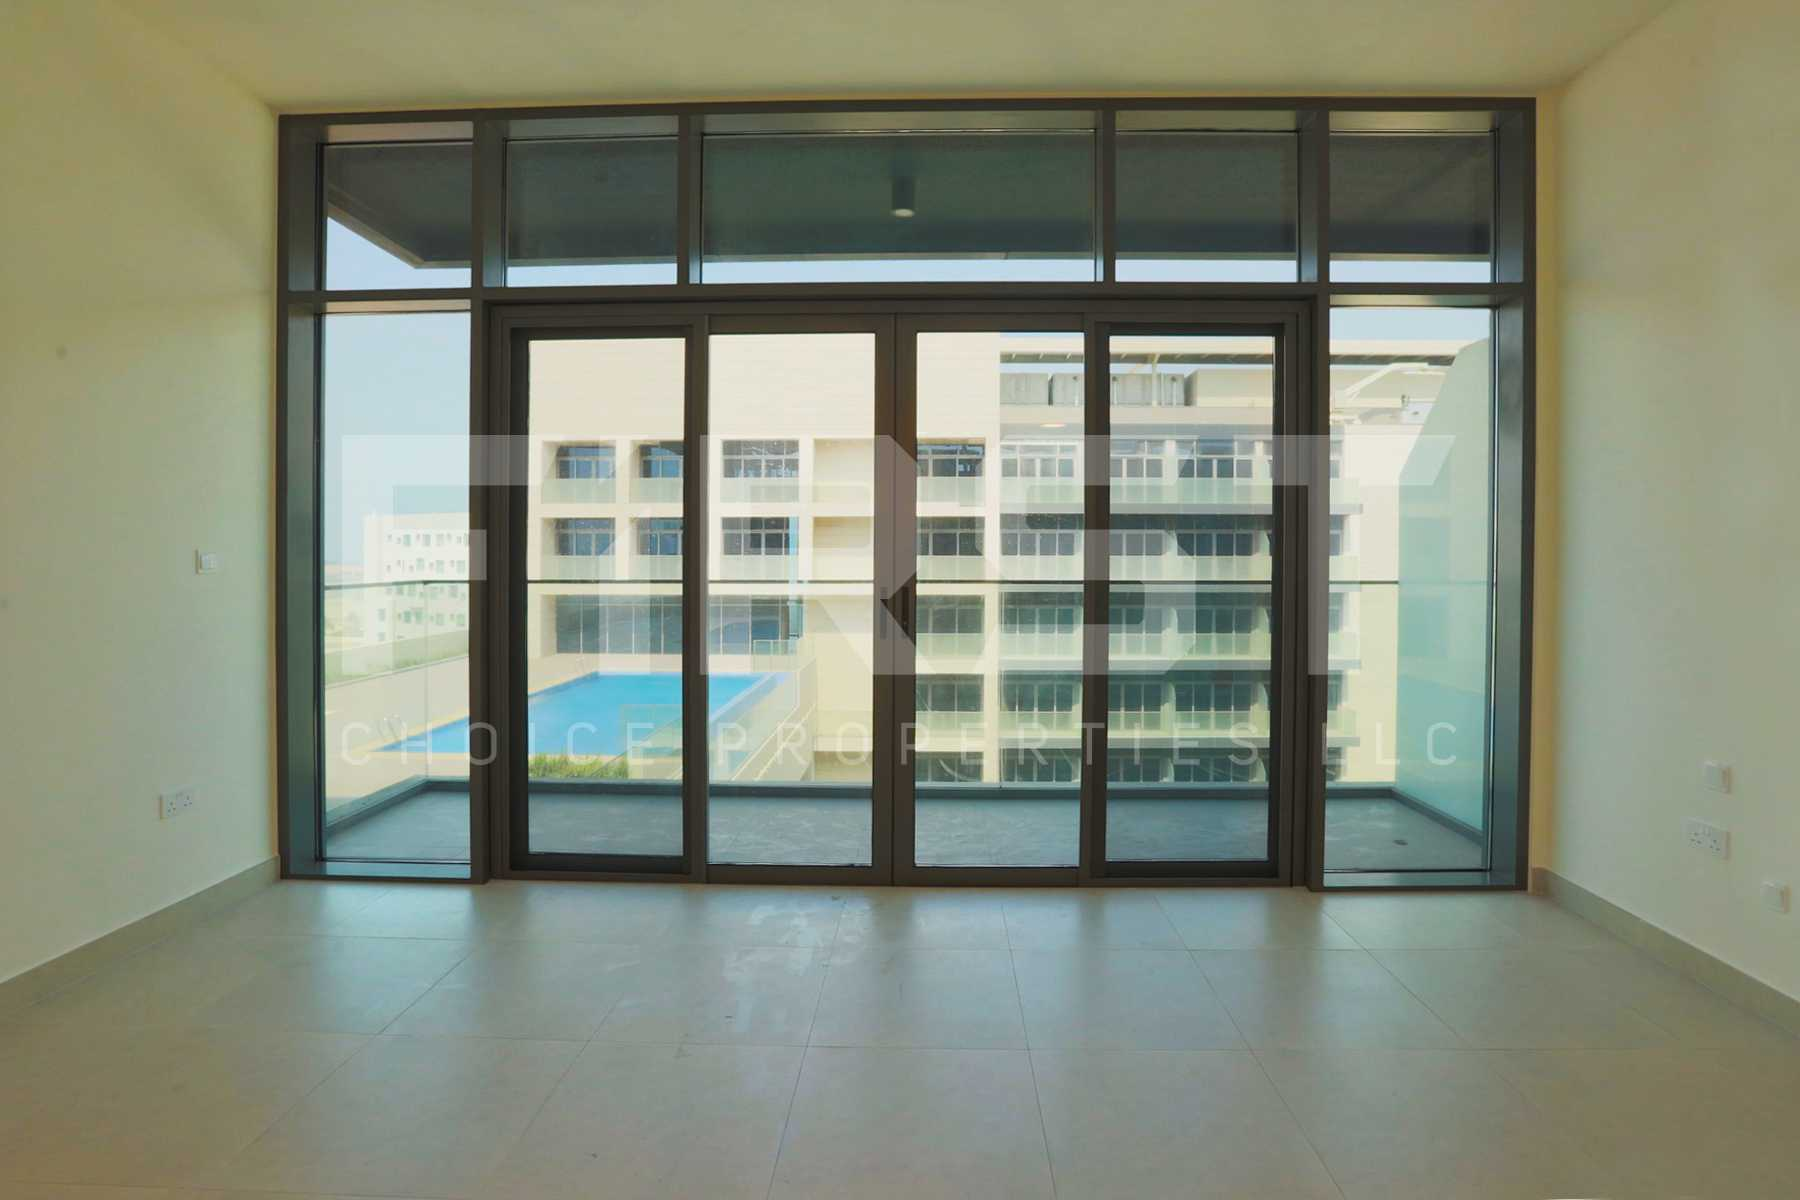 Internal of Studio Apartment in Park View Saadiyat Island Abu Dhabi UAE (12).jpg